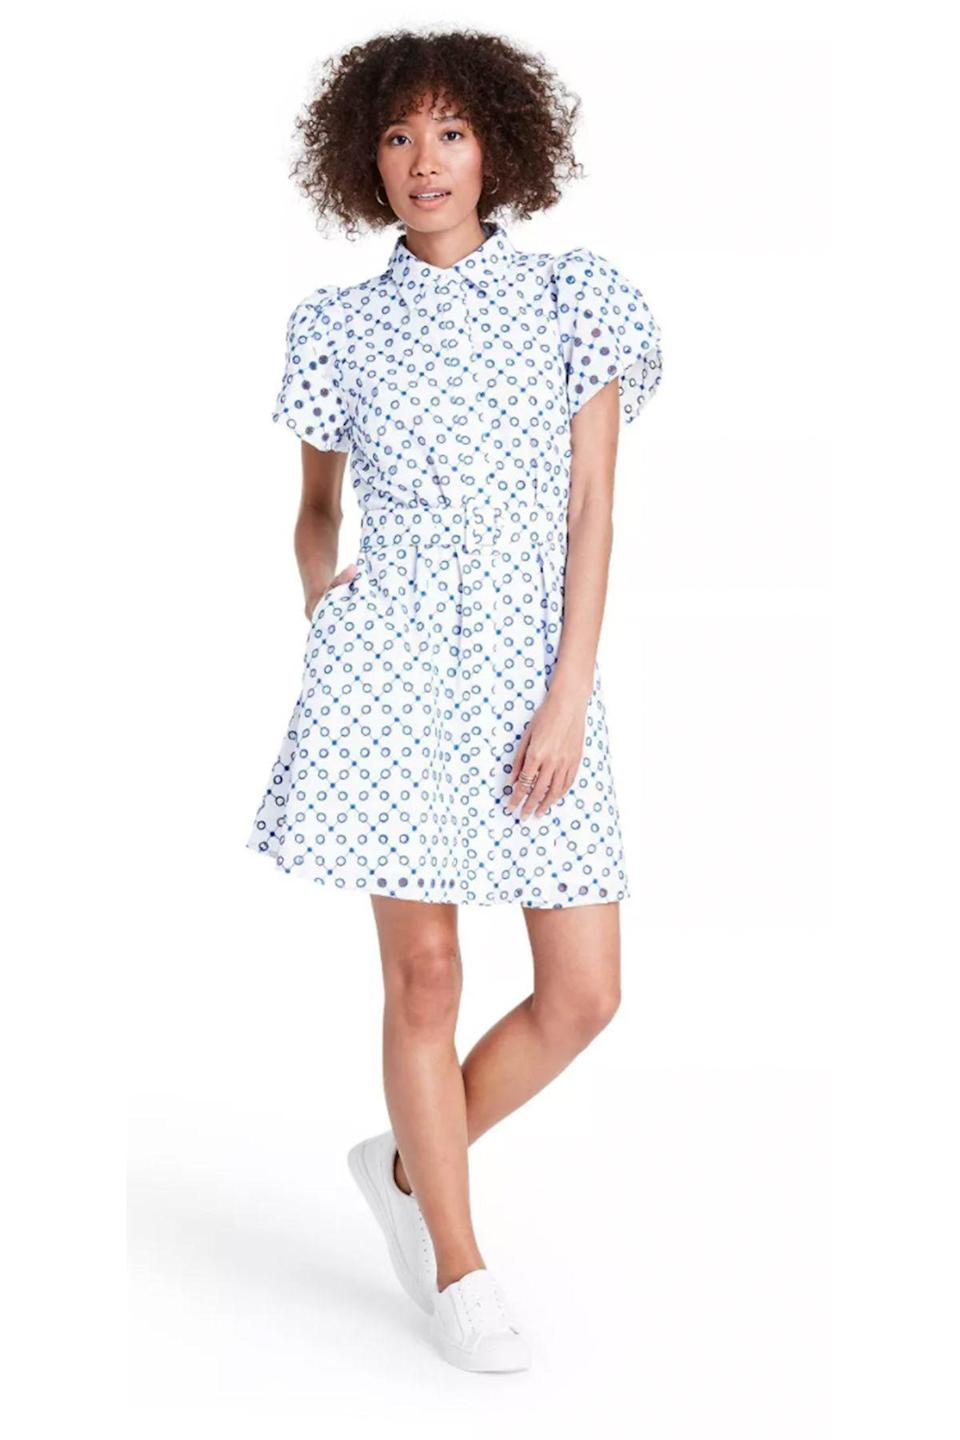 """<p><strong>ALEXIS for Target</strong></p><p>target.com</p><p><strong>$45.00</strong></p><p><a href=""""https://www.target.com/p/dot-tulip-sleeve-embroidered-shirtdress-alexis-for-target-white-blue/-/A-82020708"""" rel=""""nofollow noopener"""" target=""""_blank"""" data-ylk=""""slk:Shop Now"""" class=""""link rapid-noclick-resp"""">Shop Now</a></p>"""